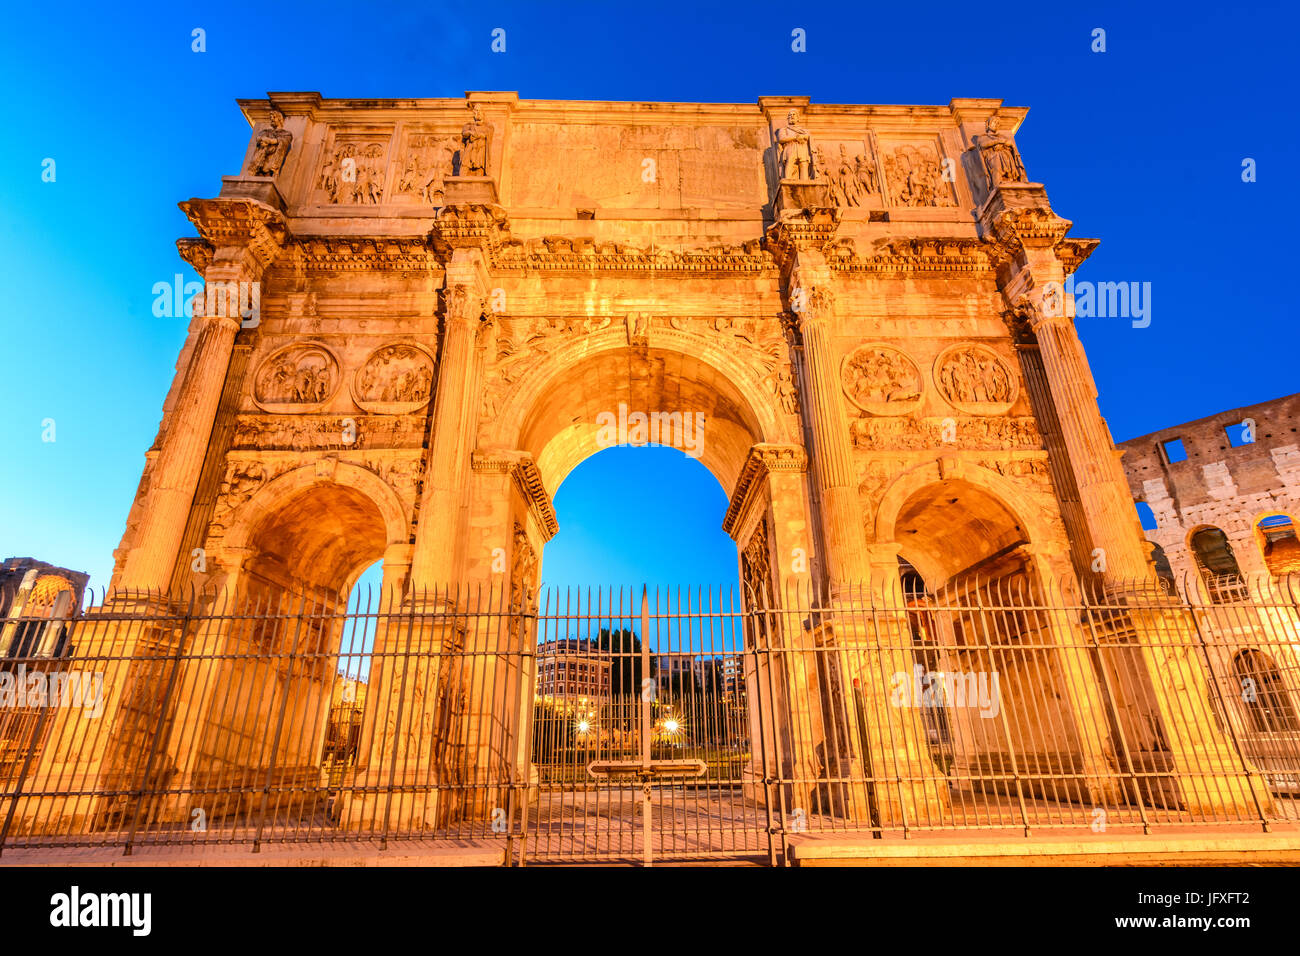 The Arch of Constantine next to the Colosseum in Rome, Italy - Stock Image